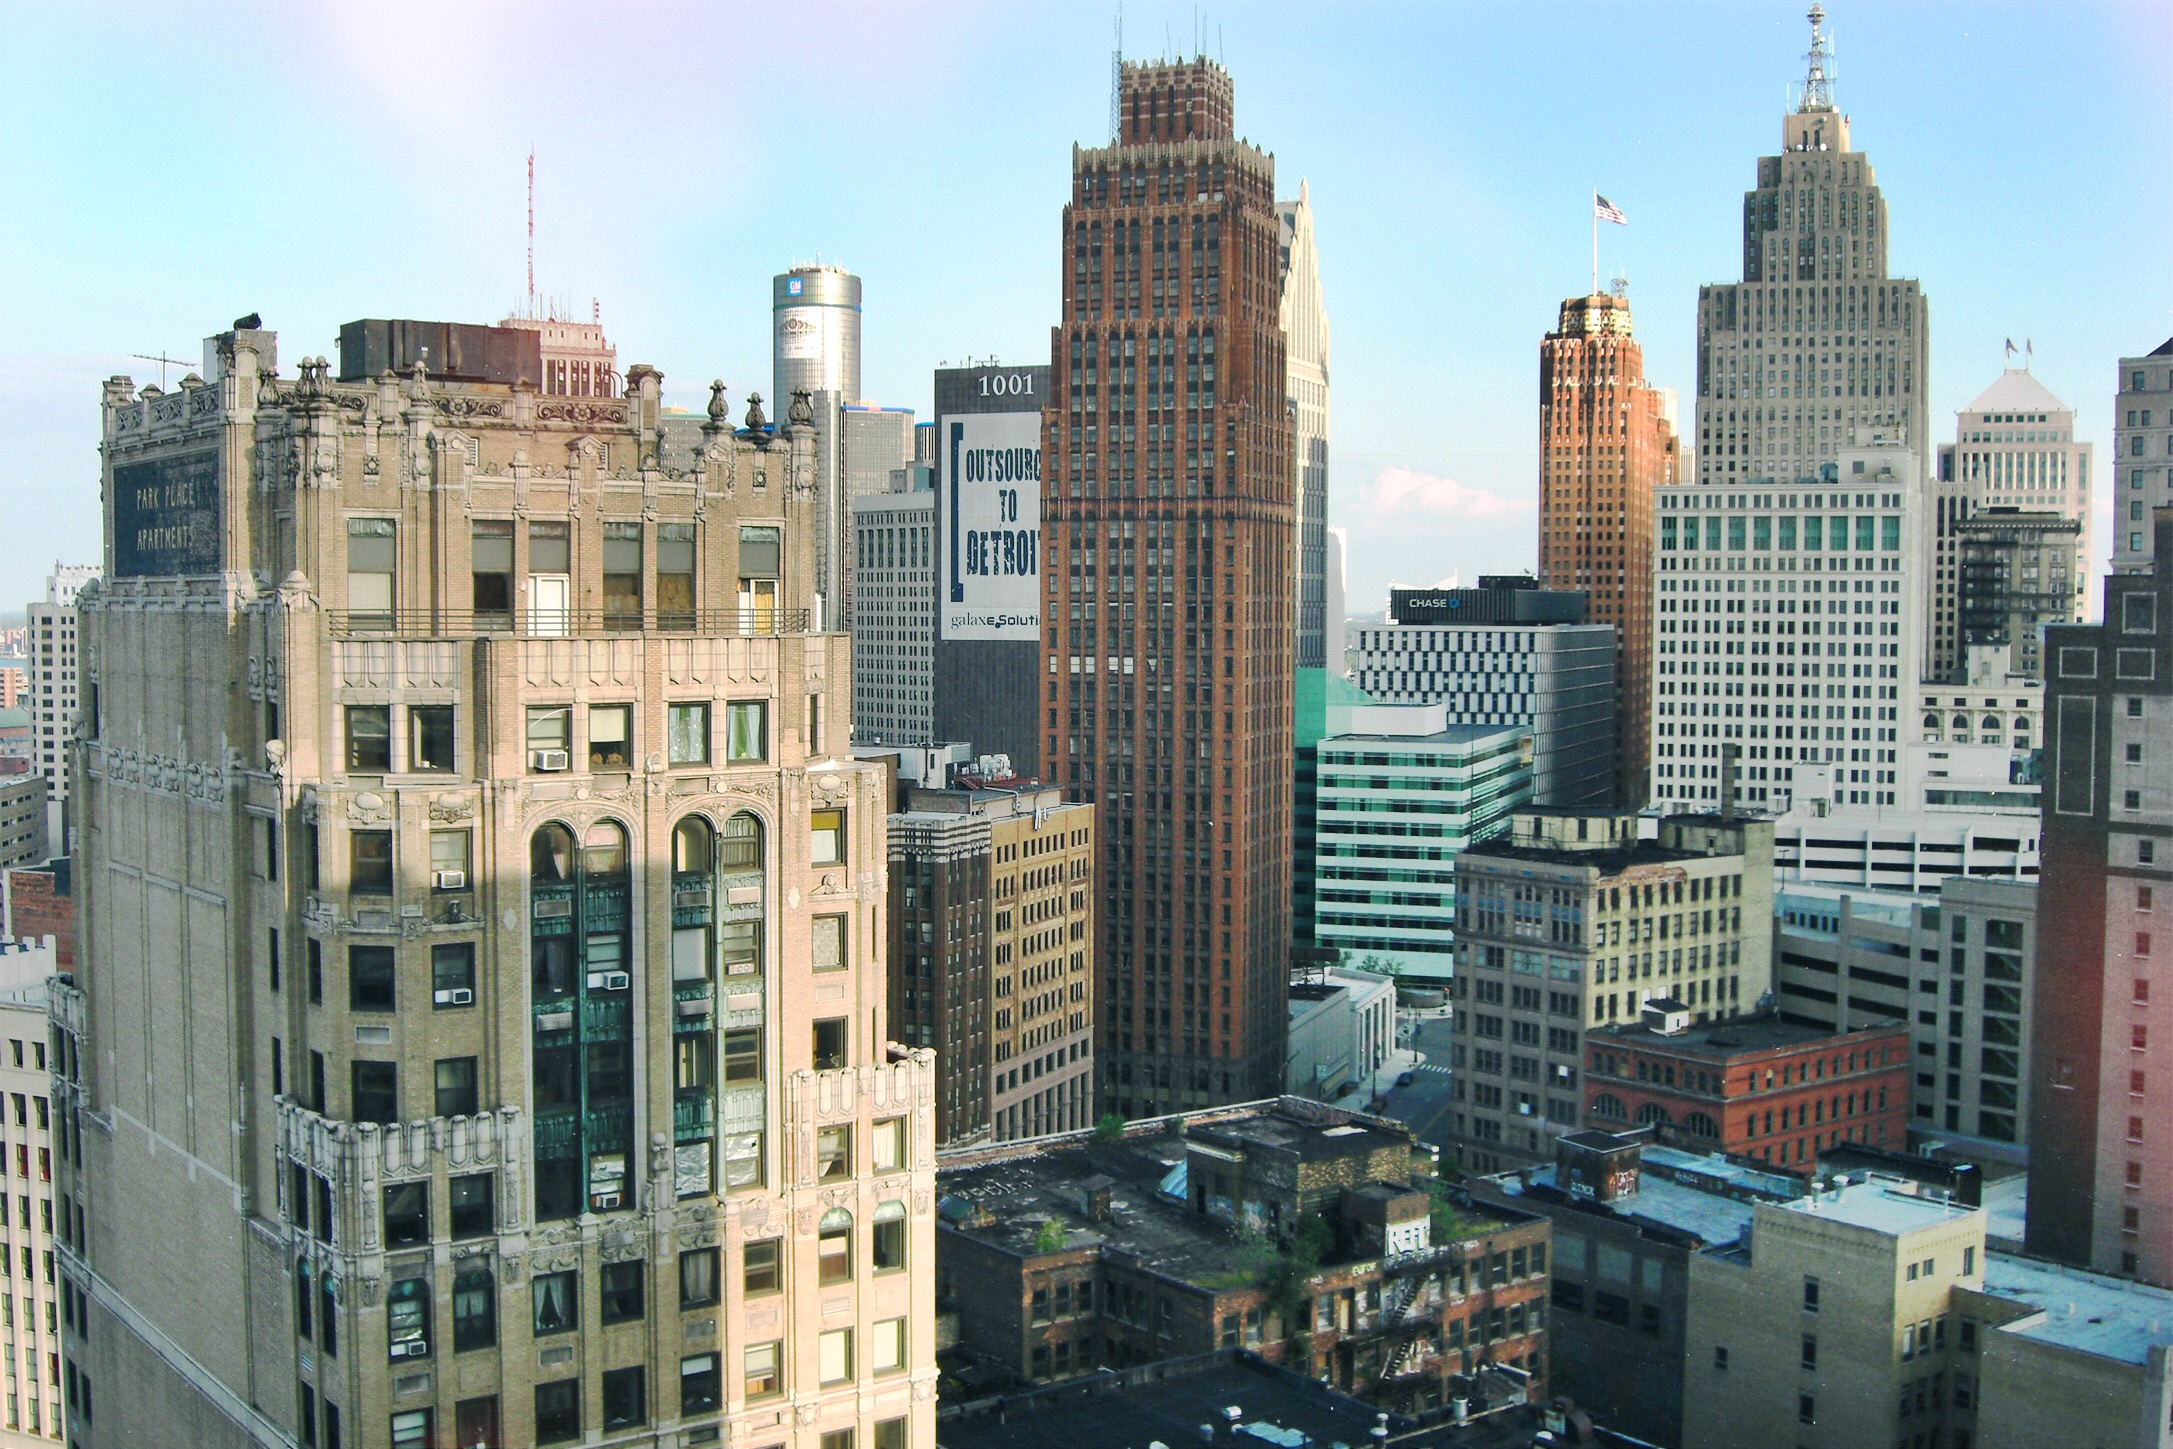 Dan Gilbert is slowly but steadily acquiring some of the most prominent buildings in Downtown.